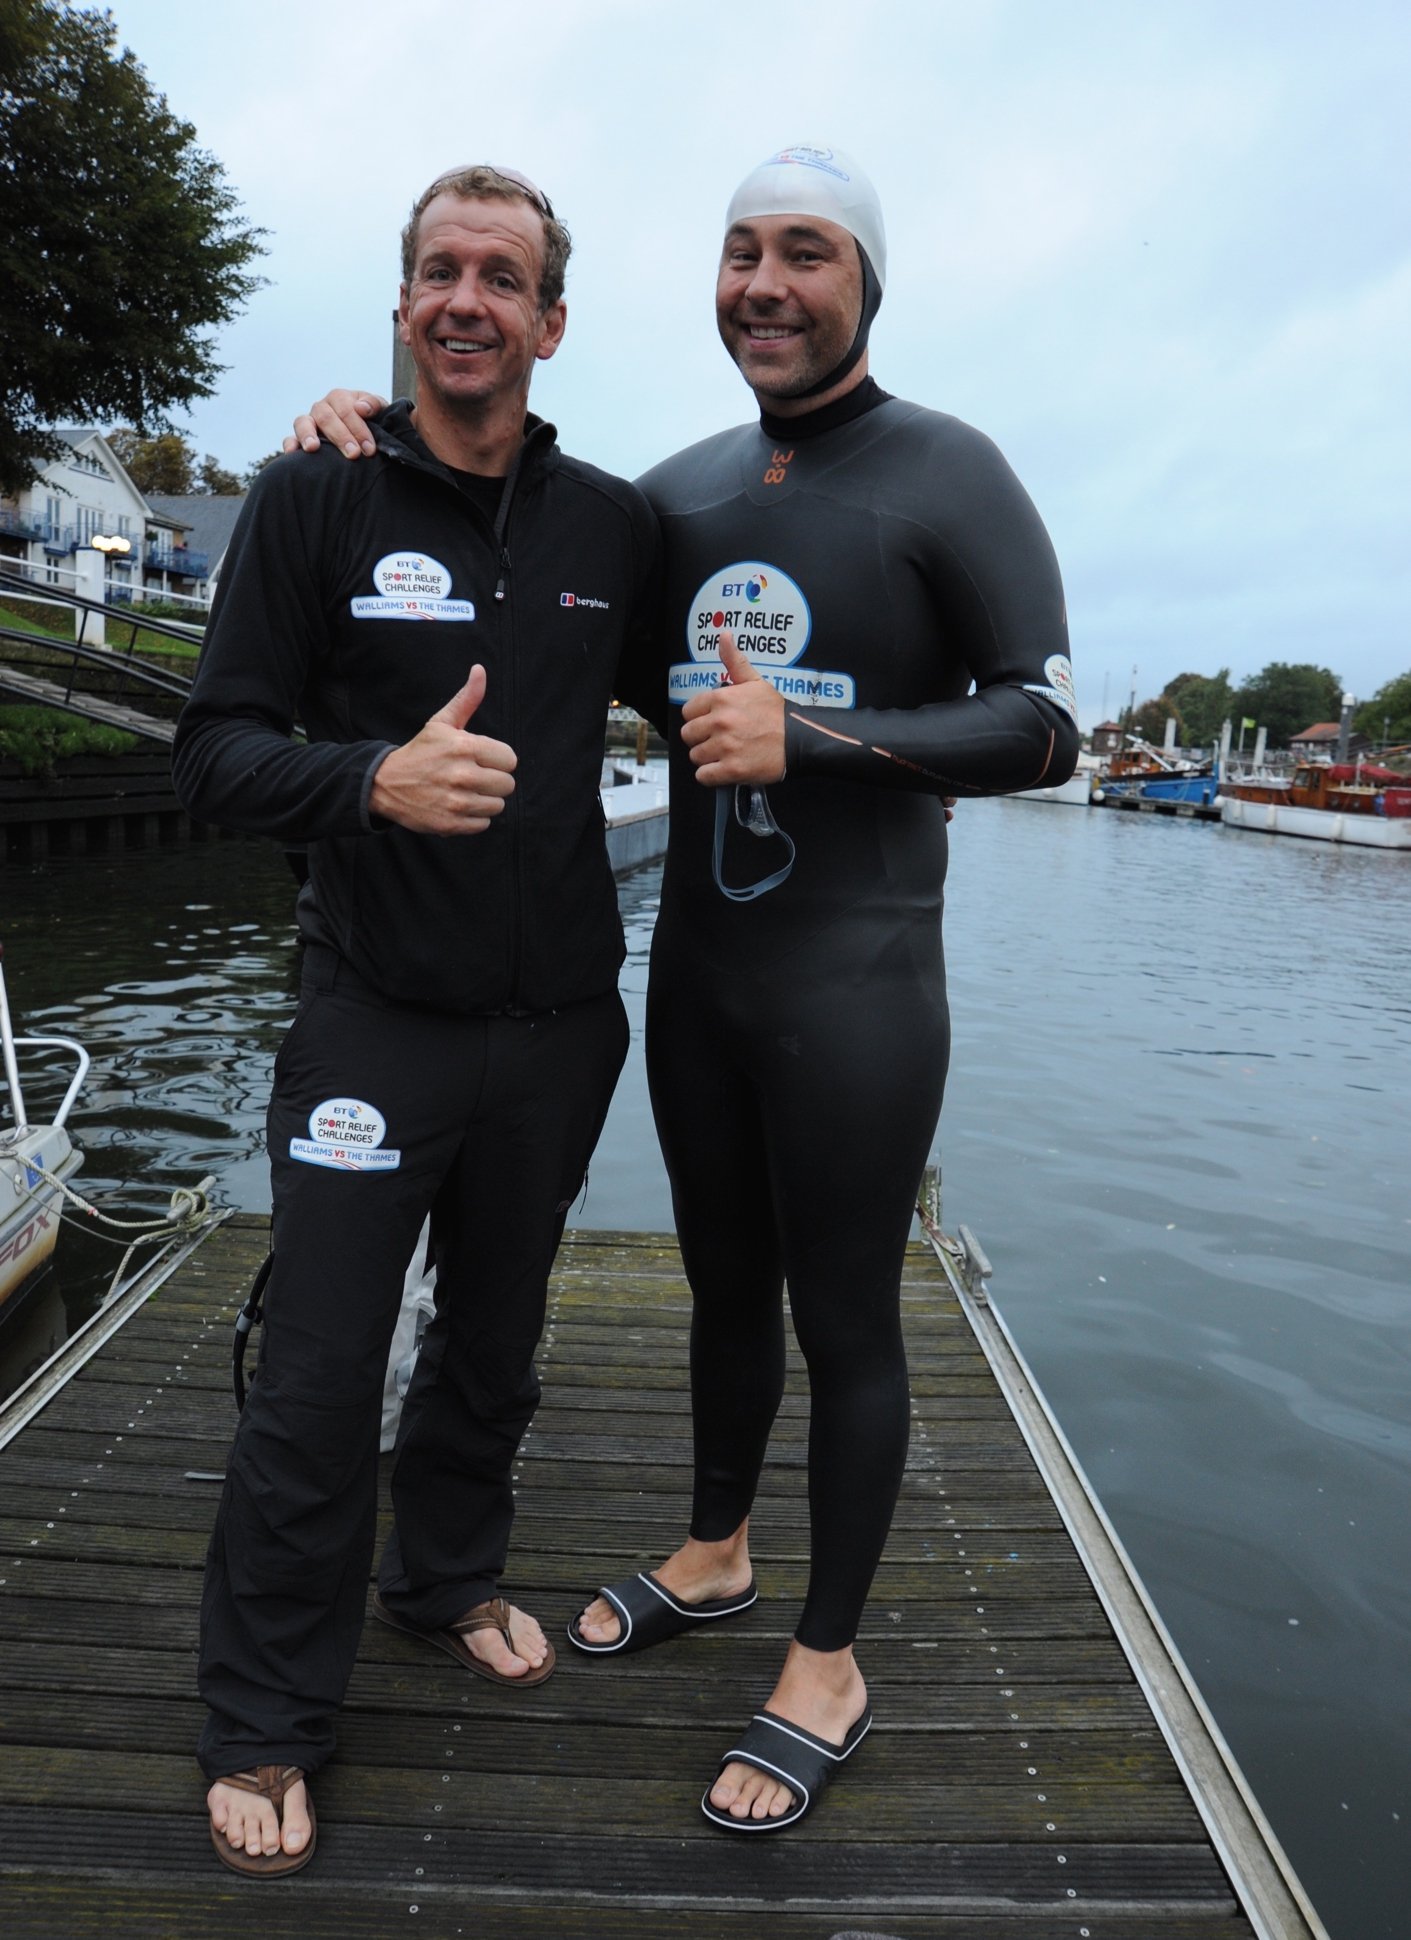 Greg Whyte and David Walliams standing on a jetty